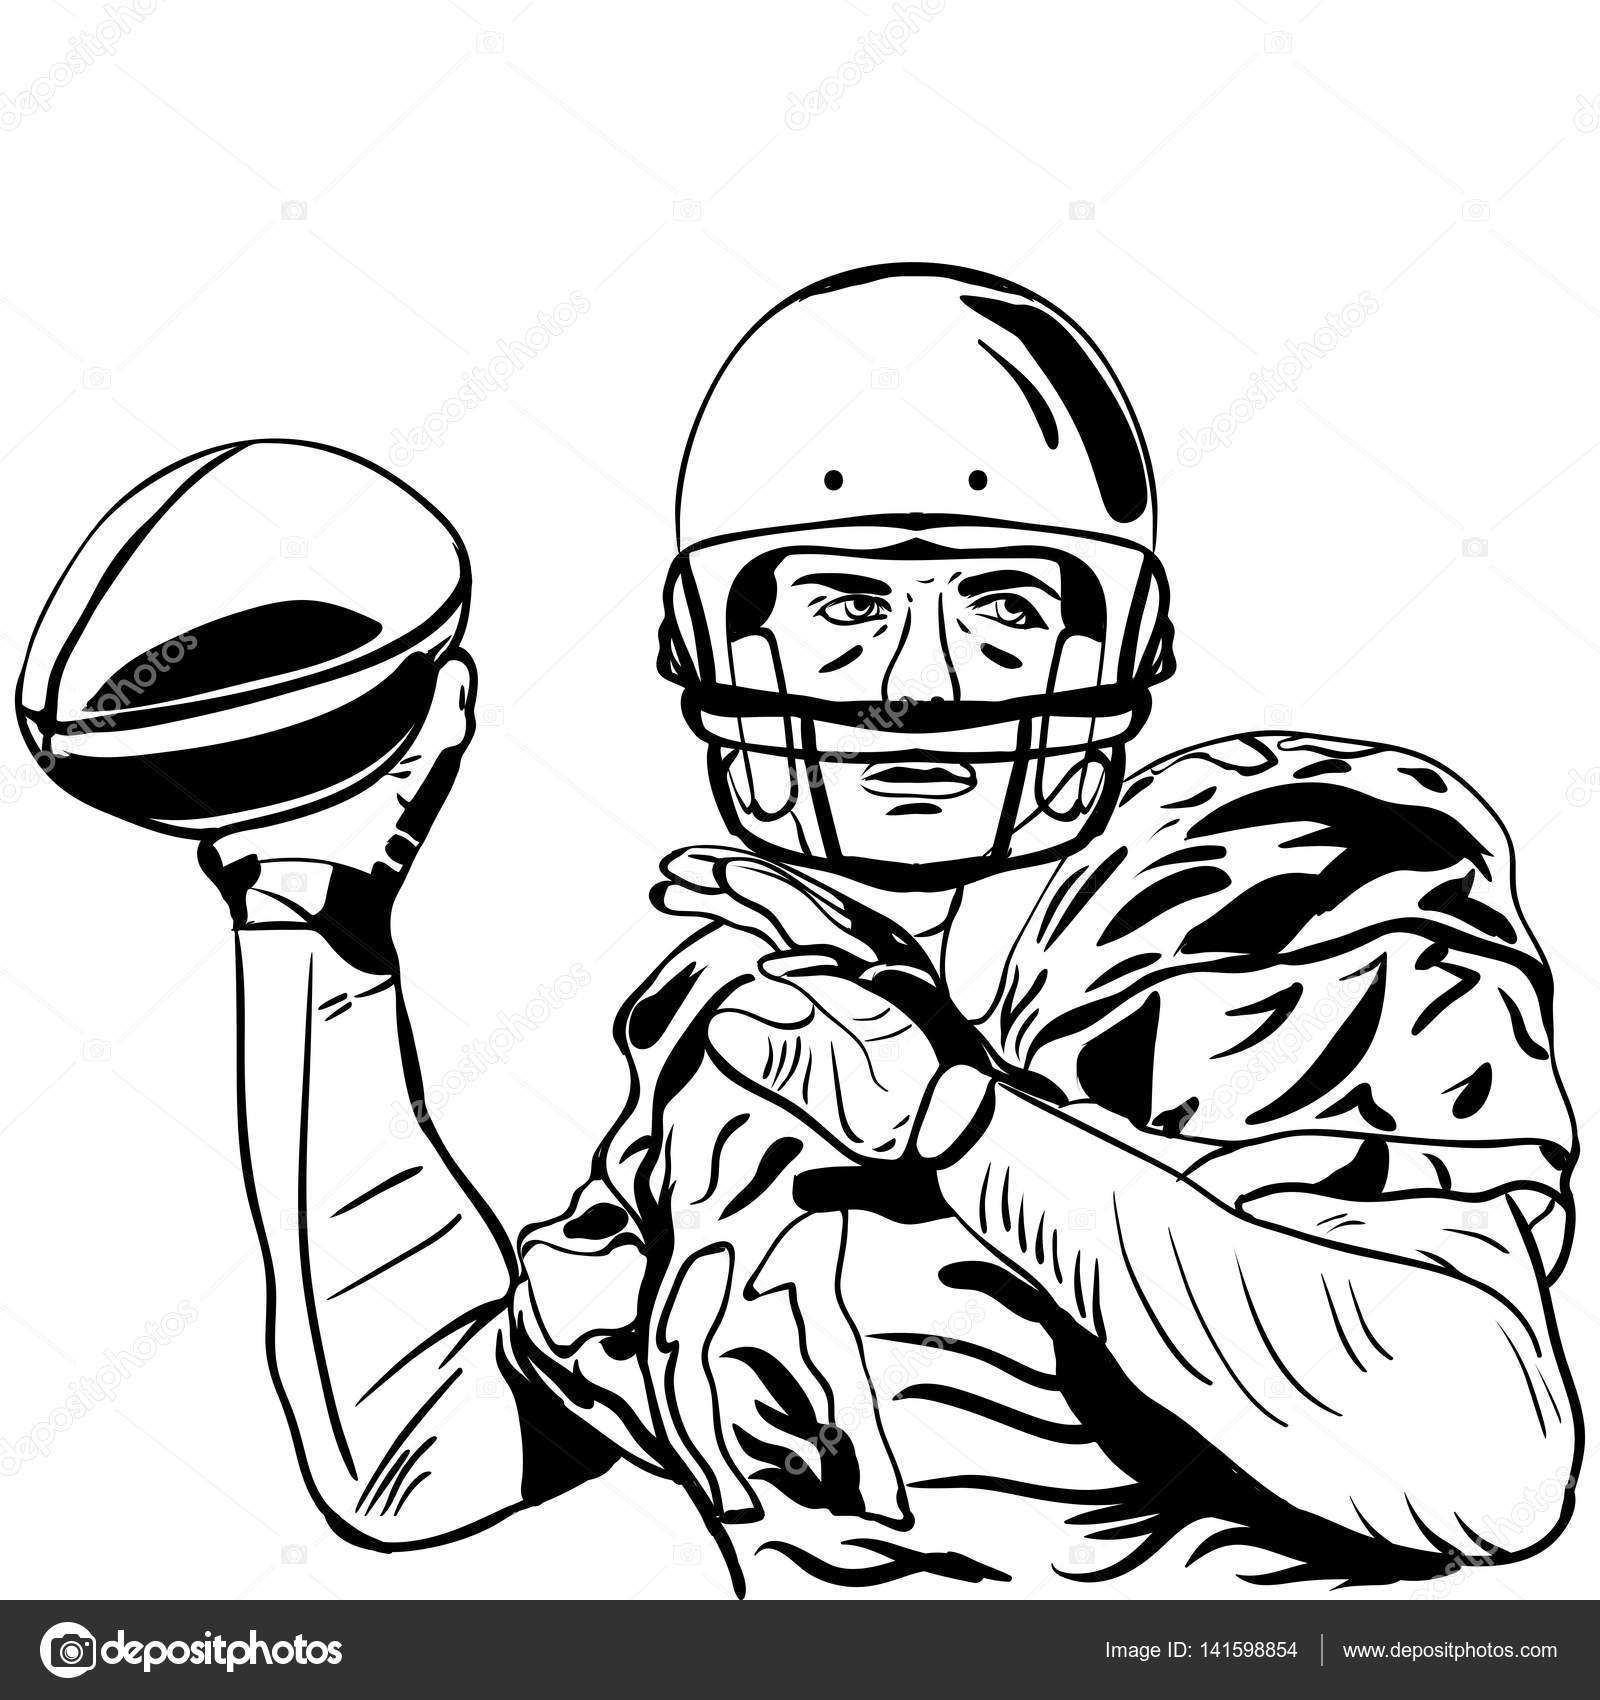 Vector illustration handskizze des american football spieler vektor von